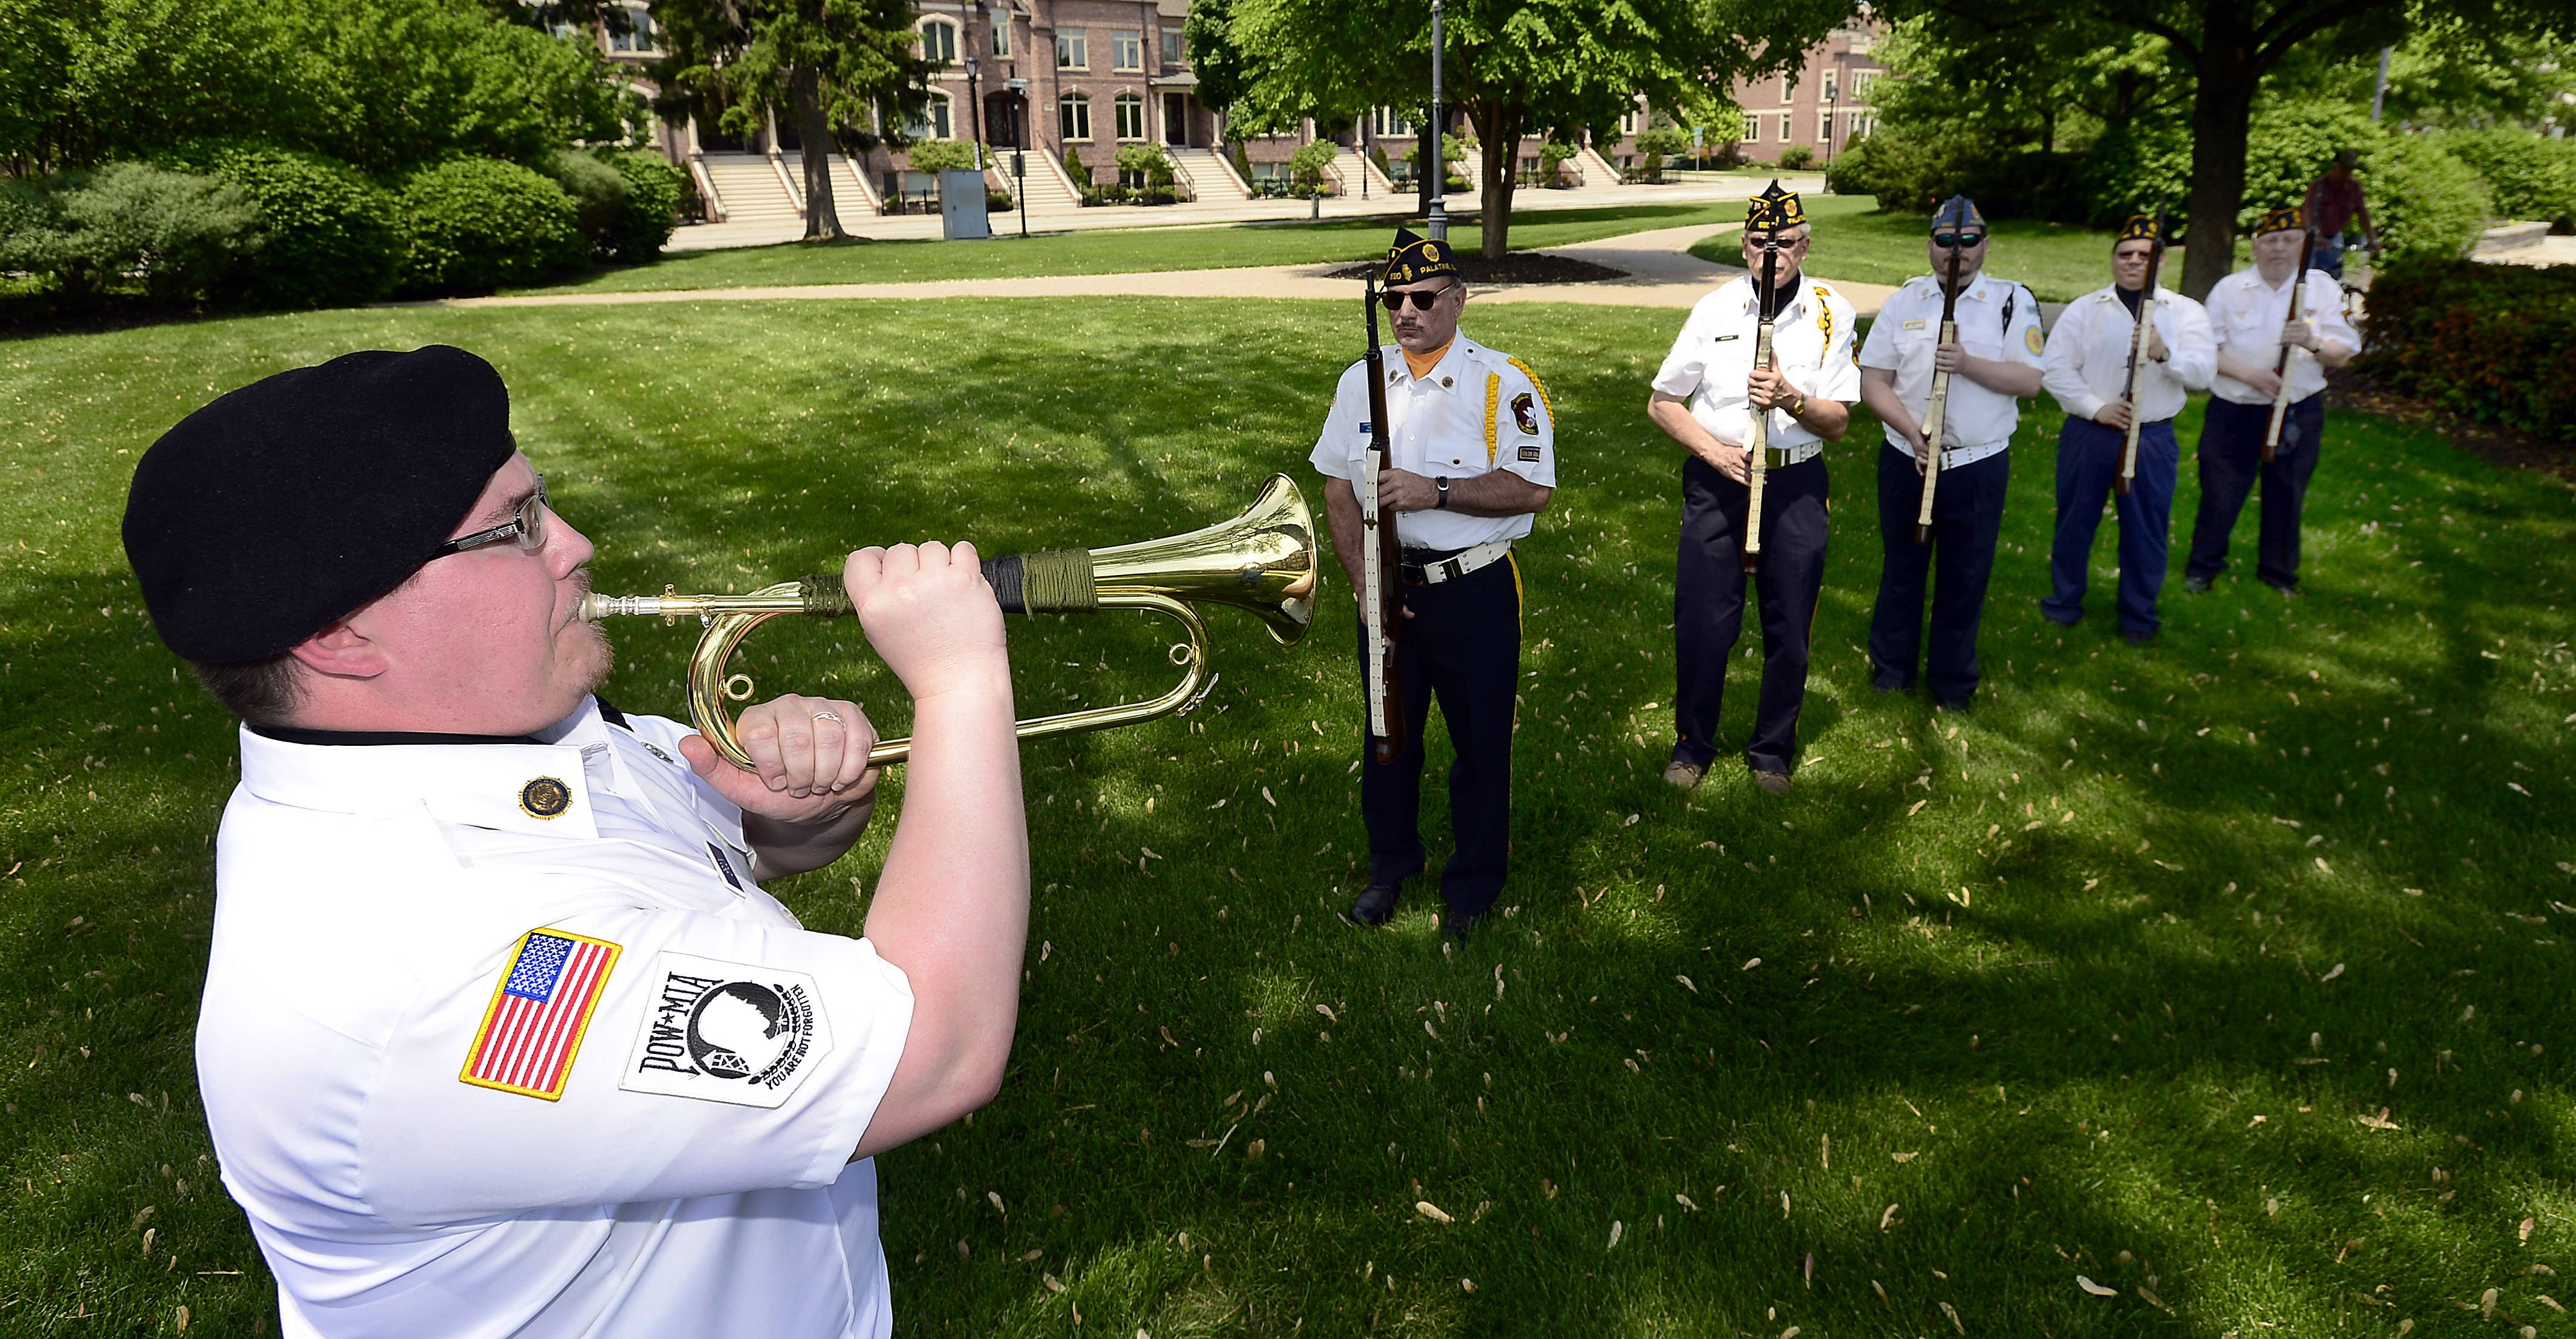 Jonathan Brock of Palatine's American Legion Post 690 sounds taps at the Memorial Day service at the Towne Square in Palatine on Monday.